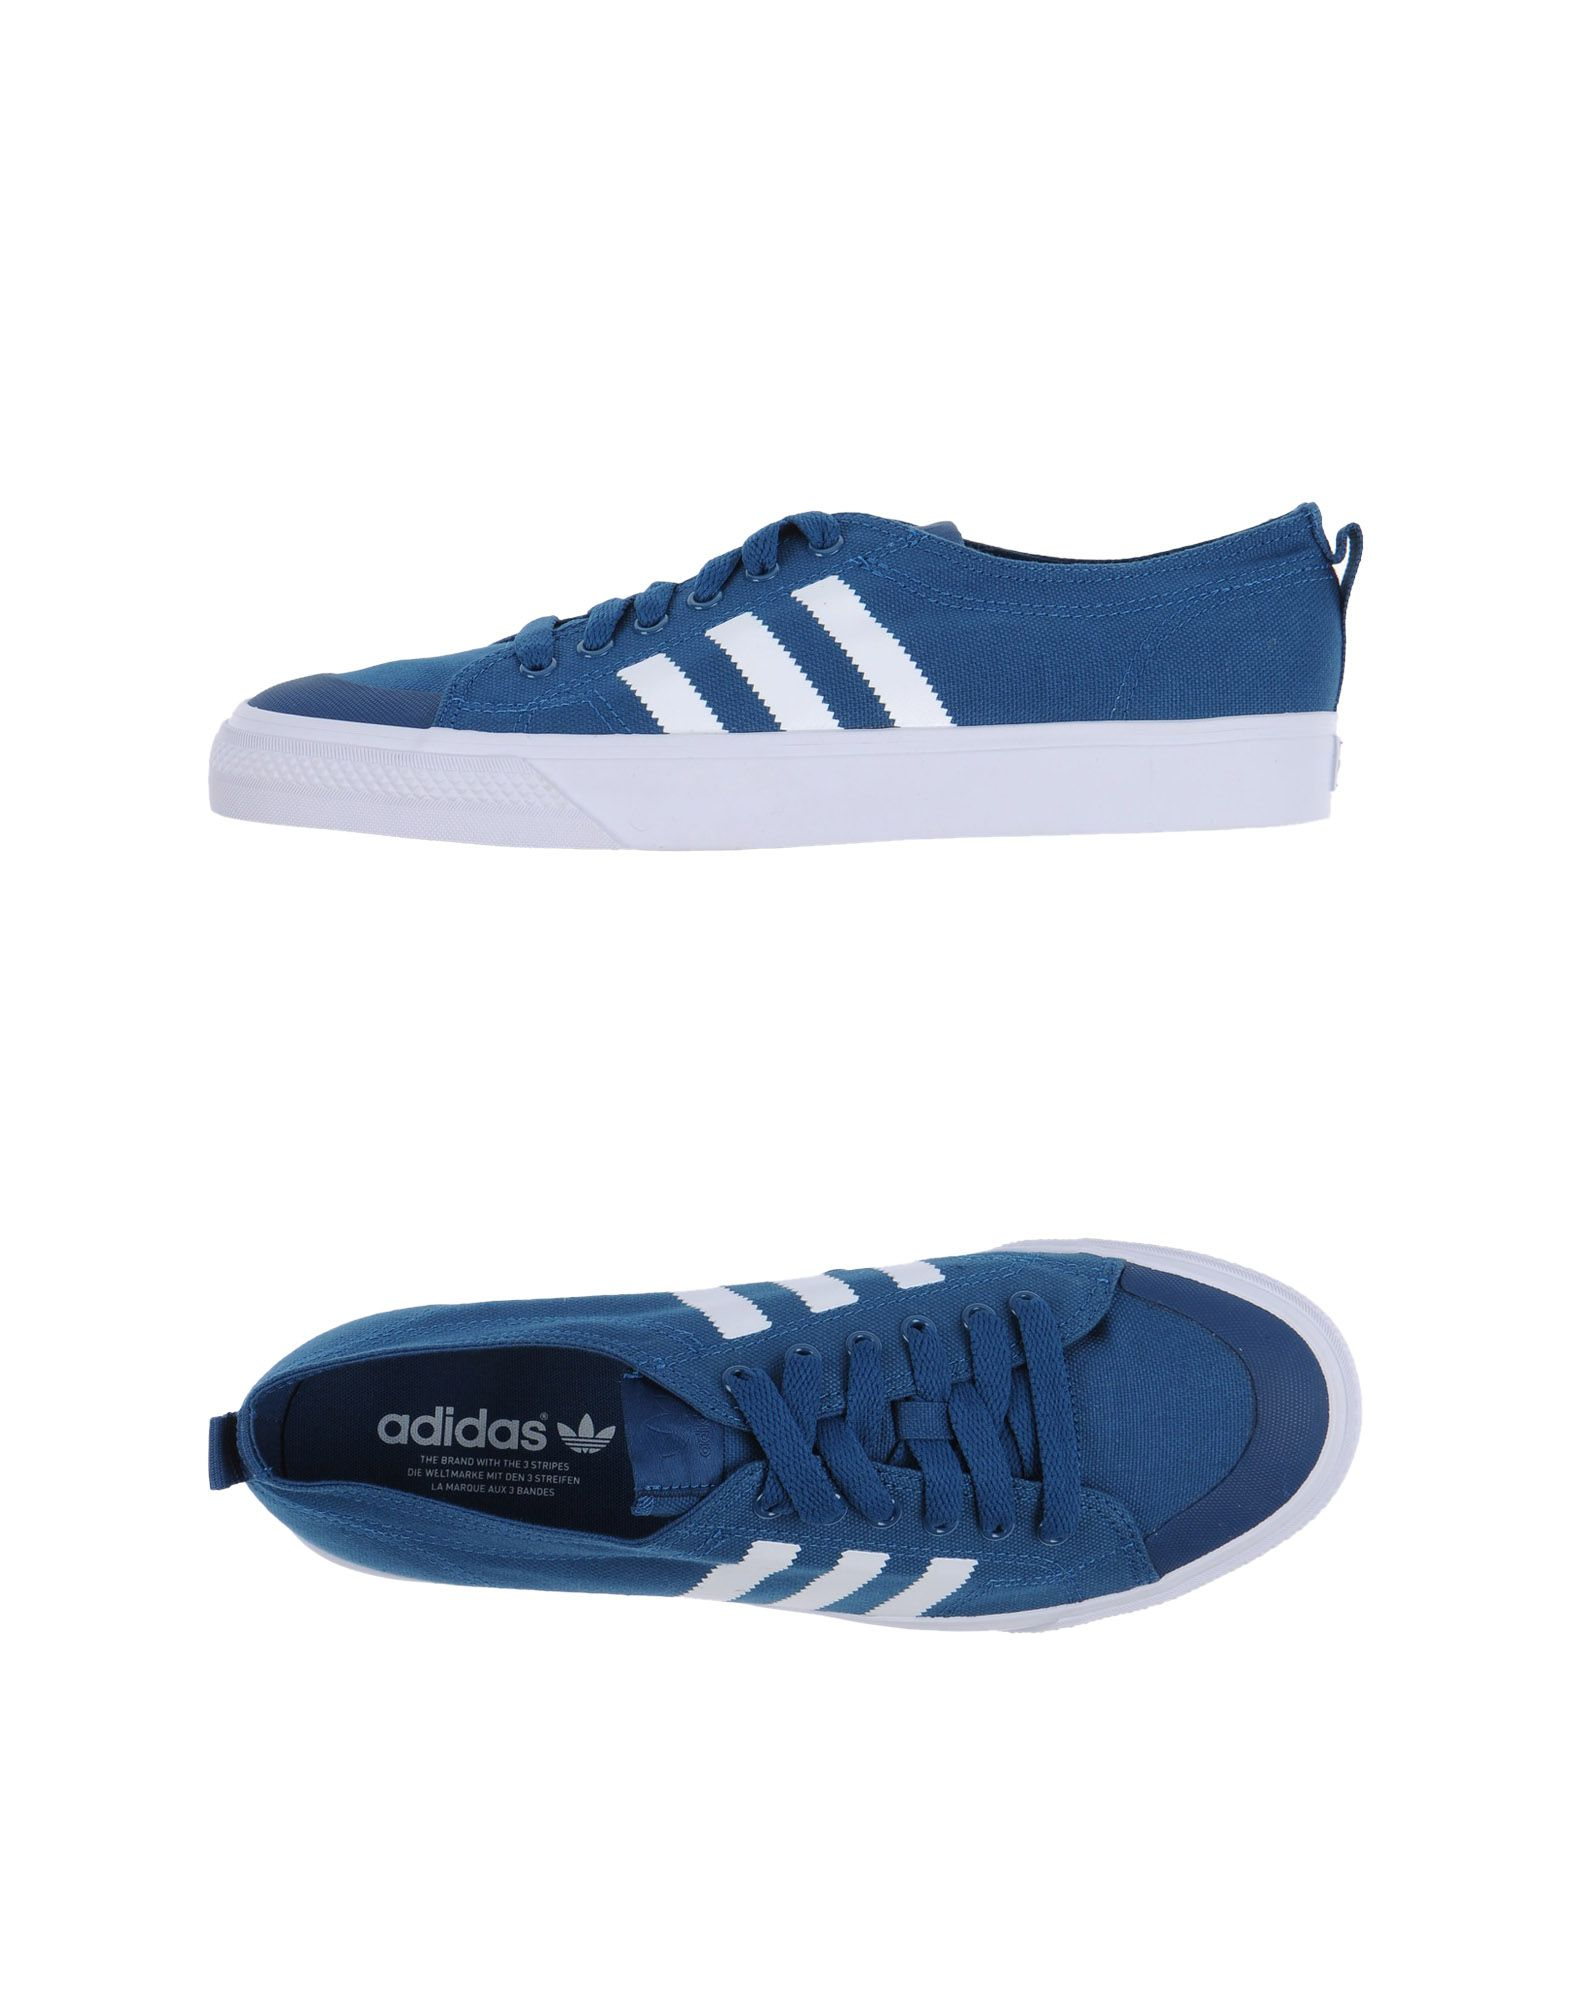 38cb003d969e Adidas Originals Originals Originals Sneakers - Men Adidas Originals  Sneakers online on United Kingdom - 44928876QI 62e348